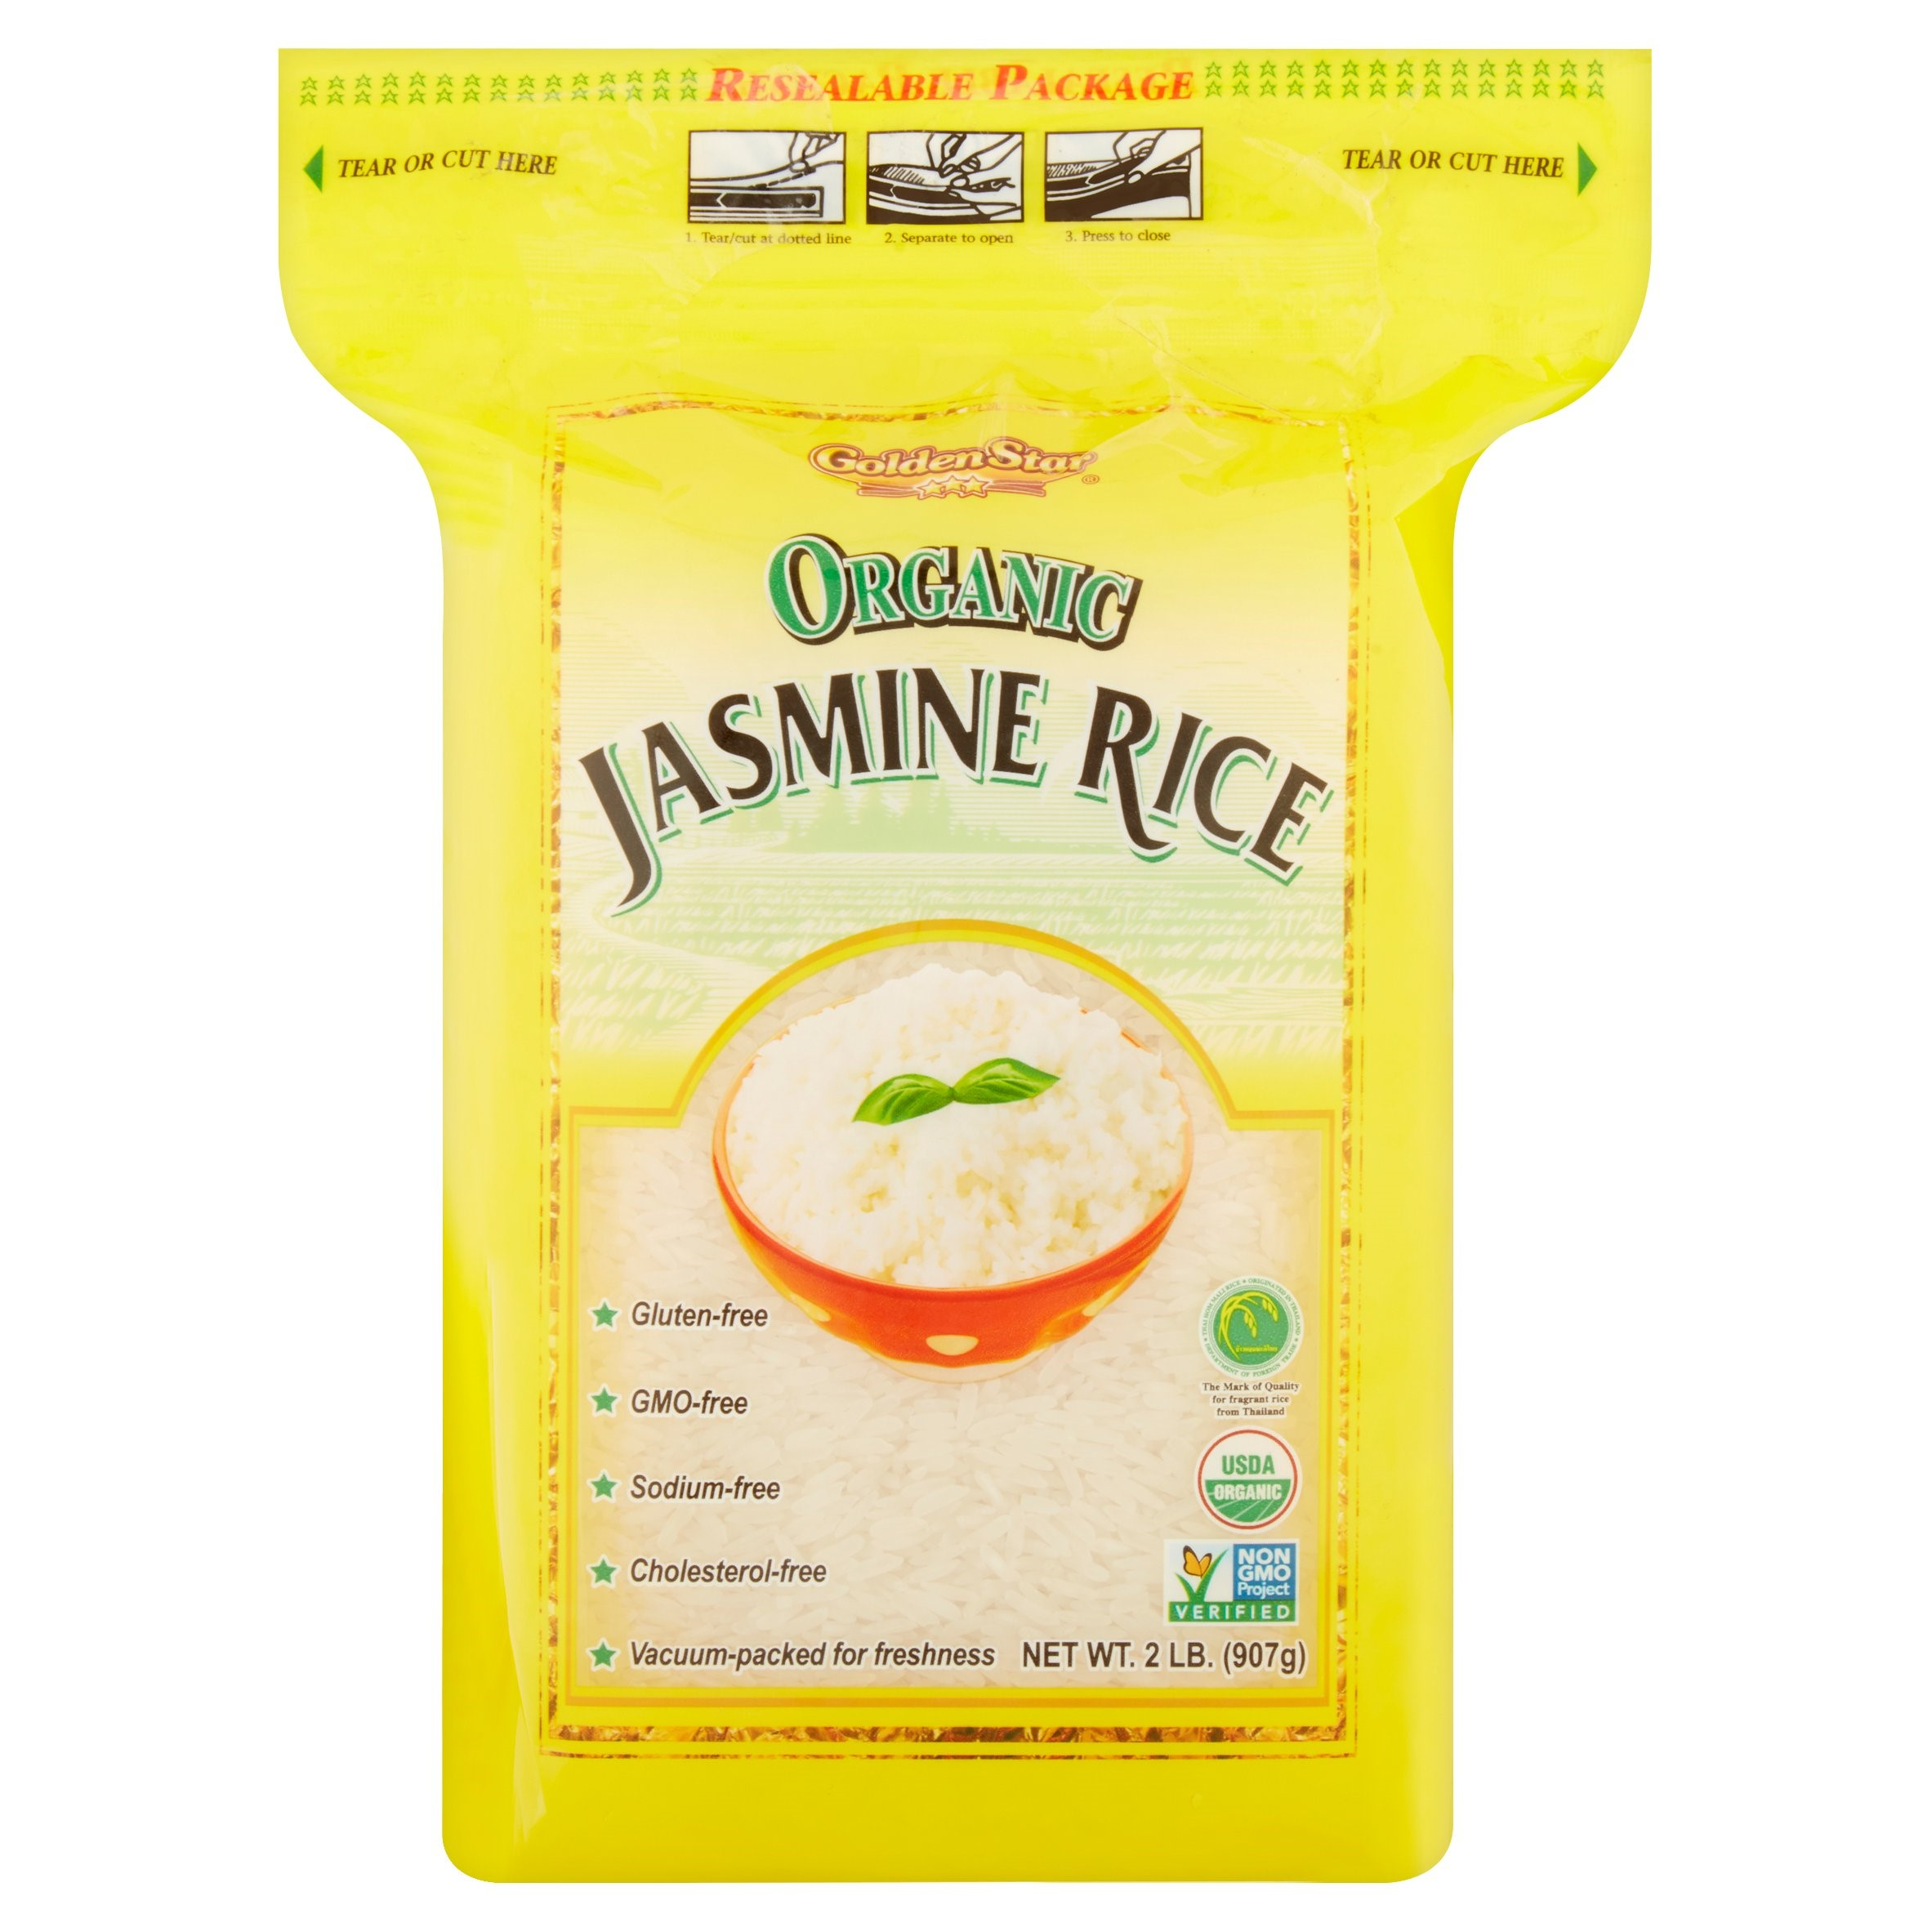 Golden Star Organic Jasmine Rice, 2 lb